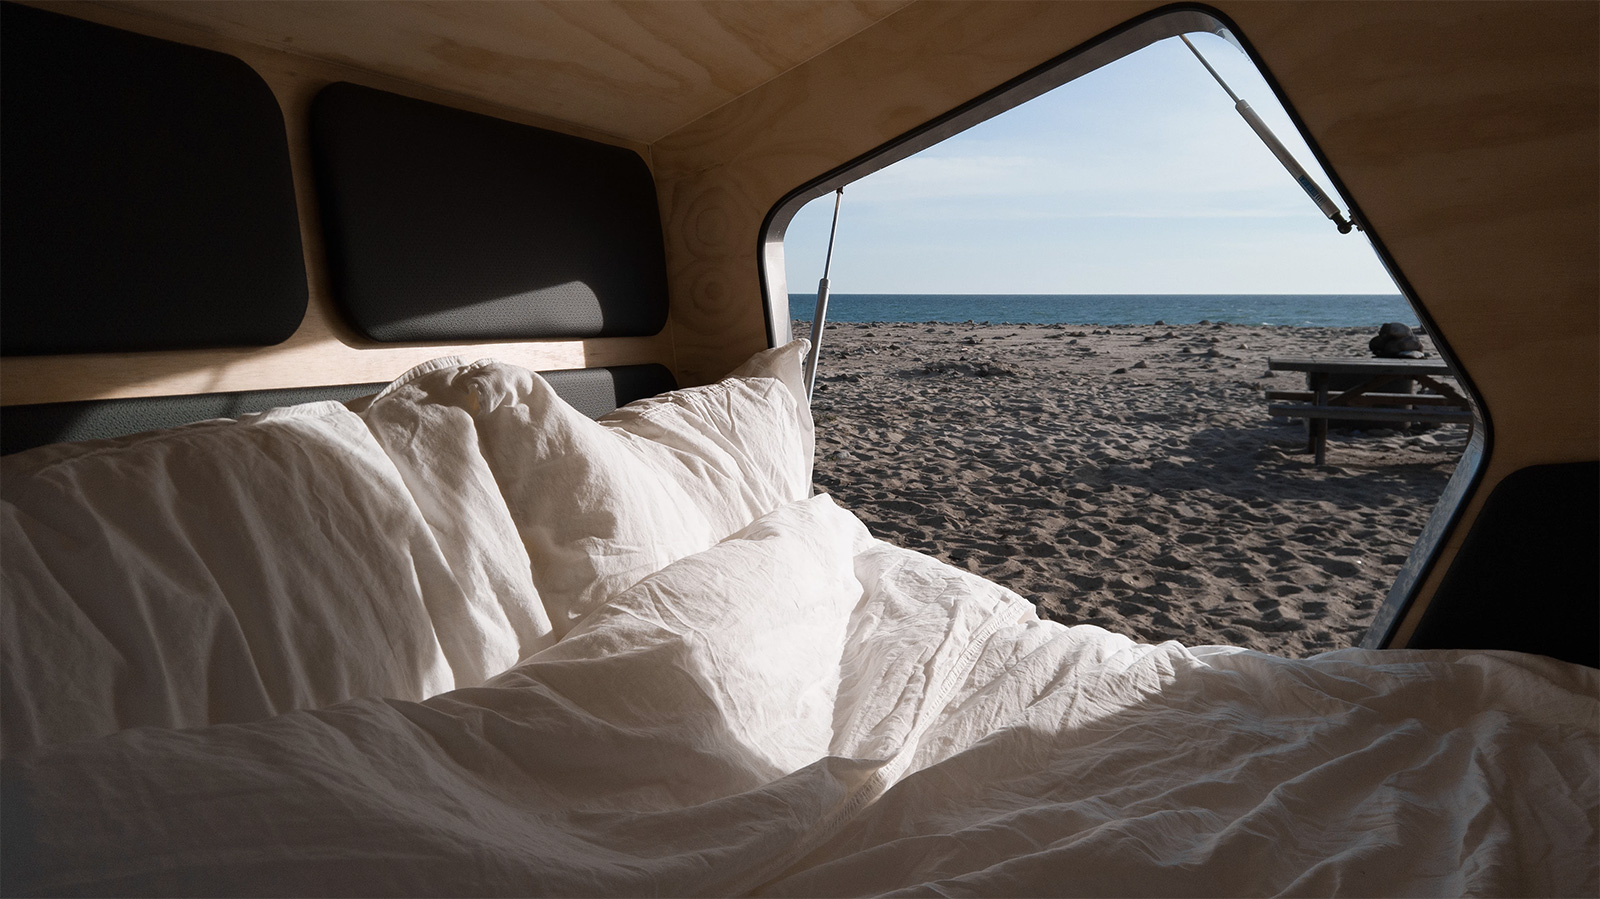 Inside the Polydrop camper - it features minimalist pine walls and leather detailing